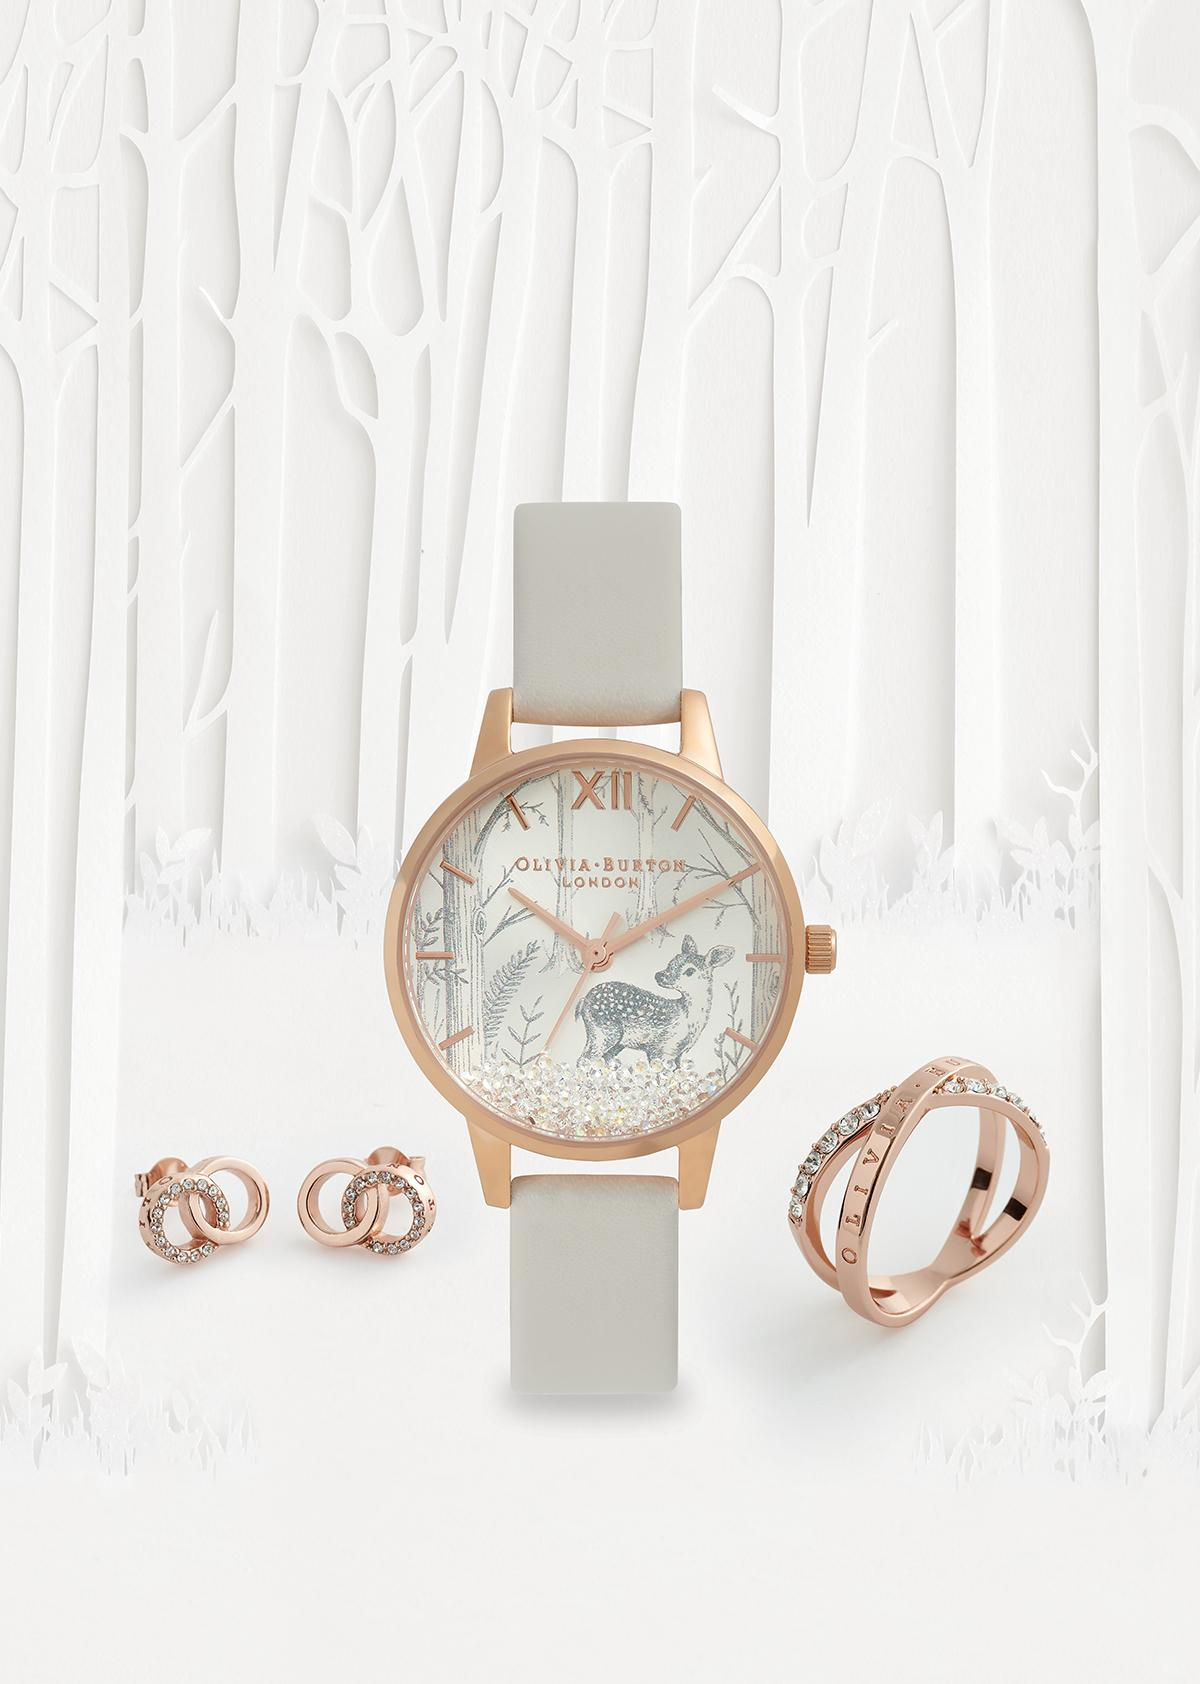 Olivia Burton Watch, ring and earrings